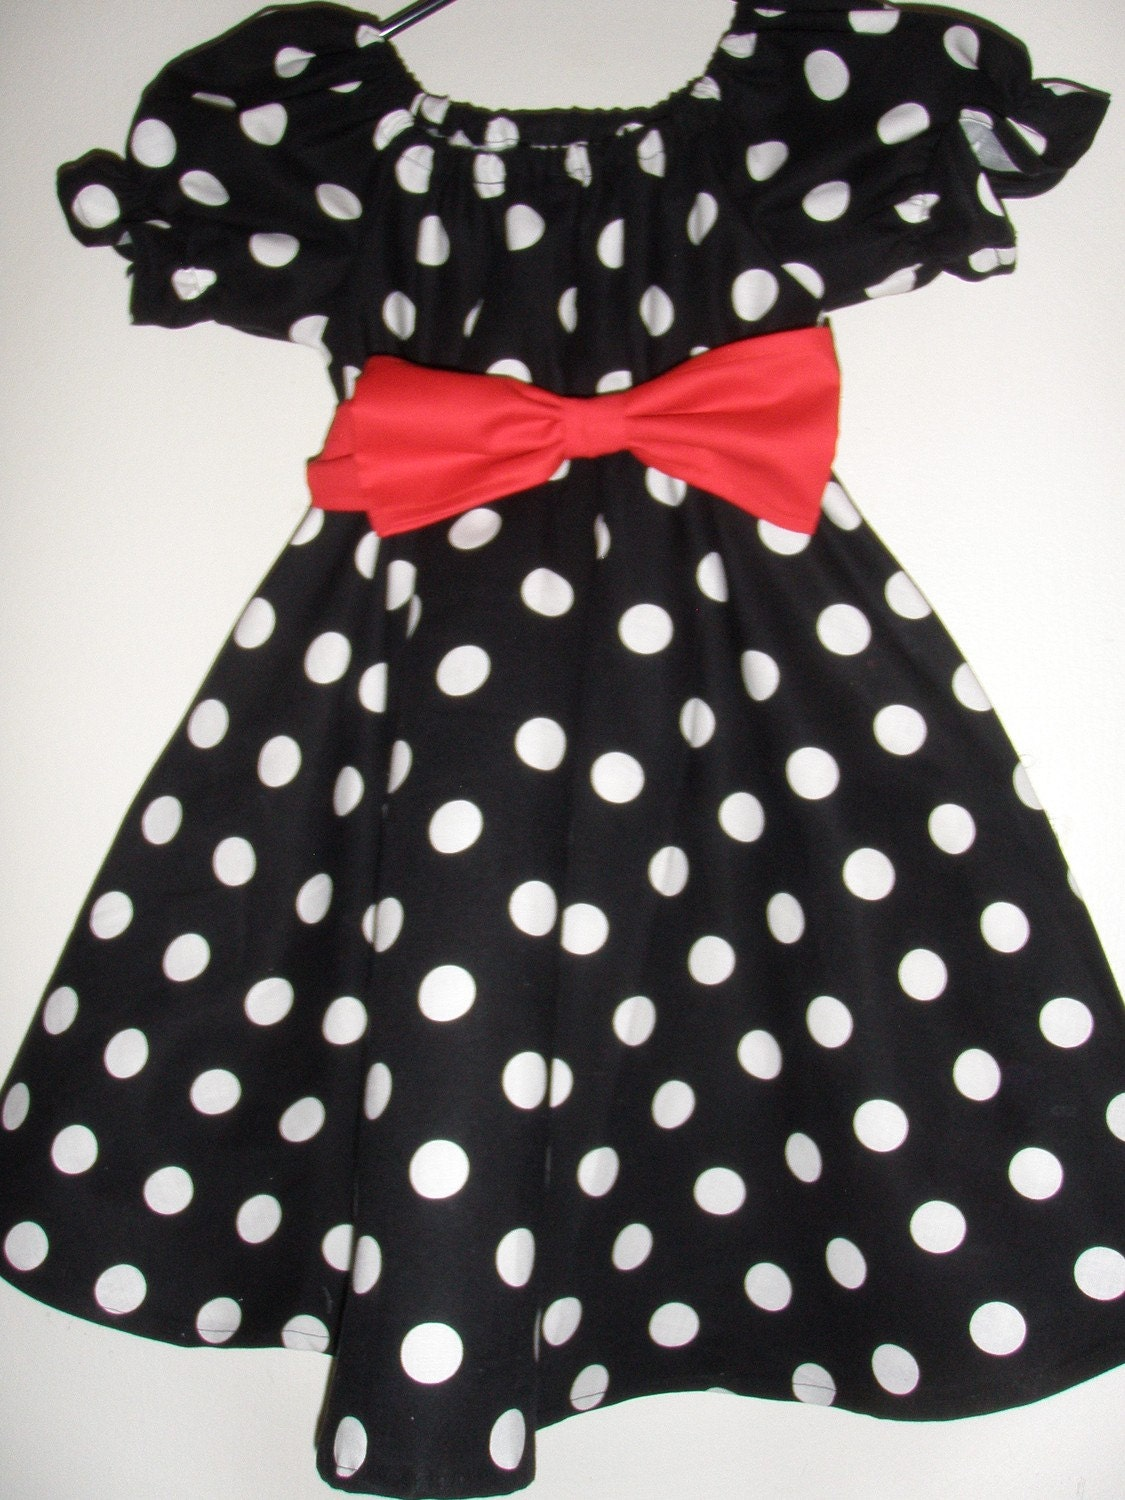 The DIY No Sew Minnie Mouse Costume! Black long sleeved shirt, black tights, pink shoes, and white gloves Now dress up your little Minnie Mouse with the black undershirt, black tights, pink shoes, and white gloves (if she will let you) and be prepared for a lot of squeals and excitement!